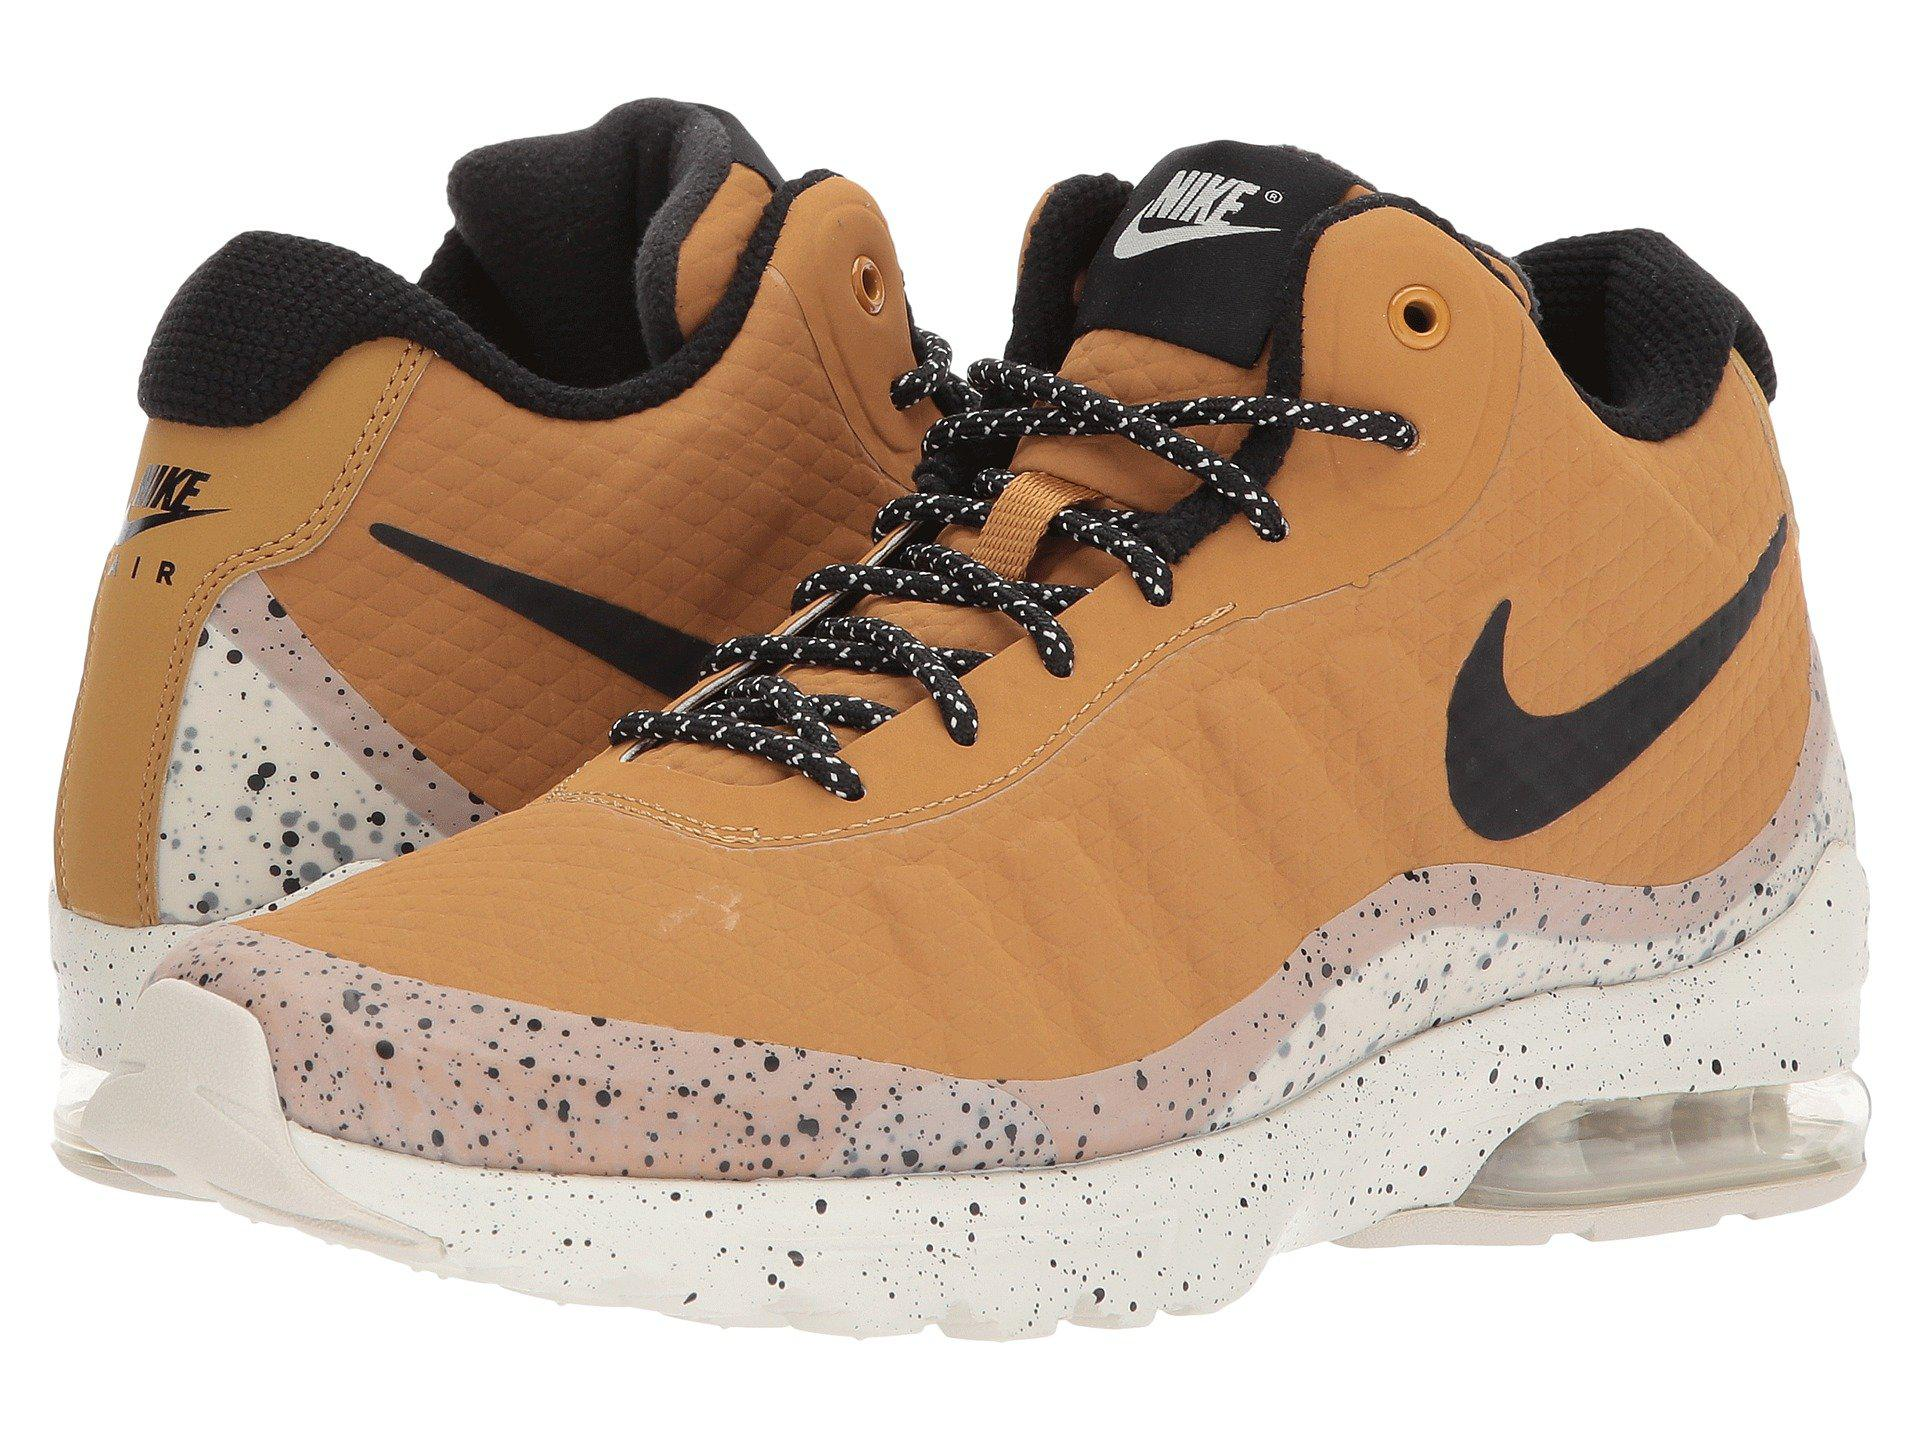 065d800a5494b Lyst - Nike Air Max Invigor Mid for Men